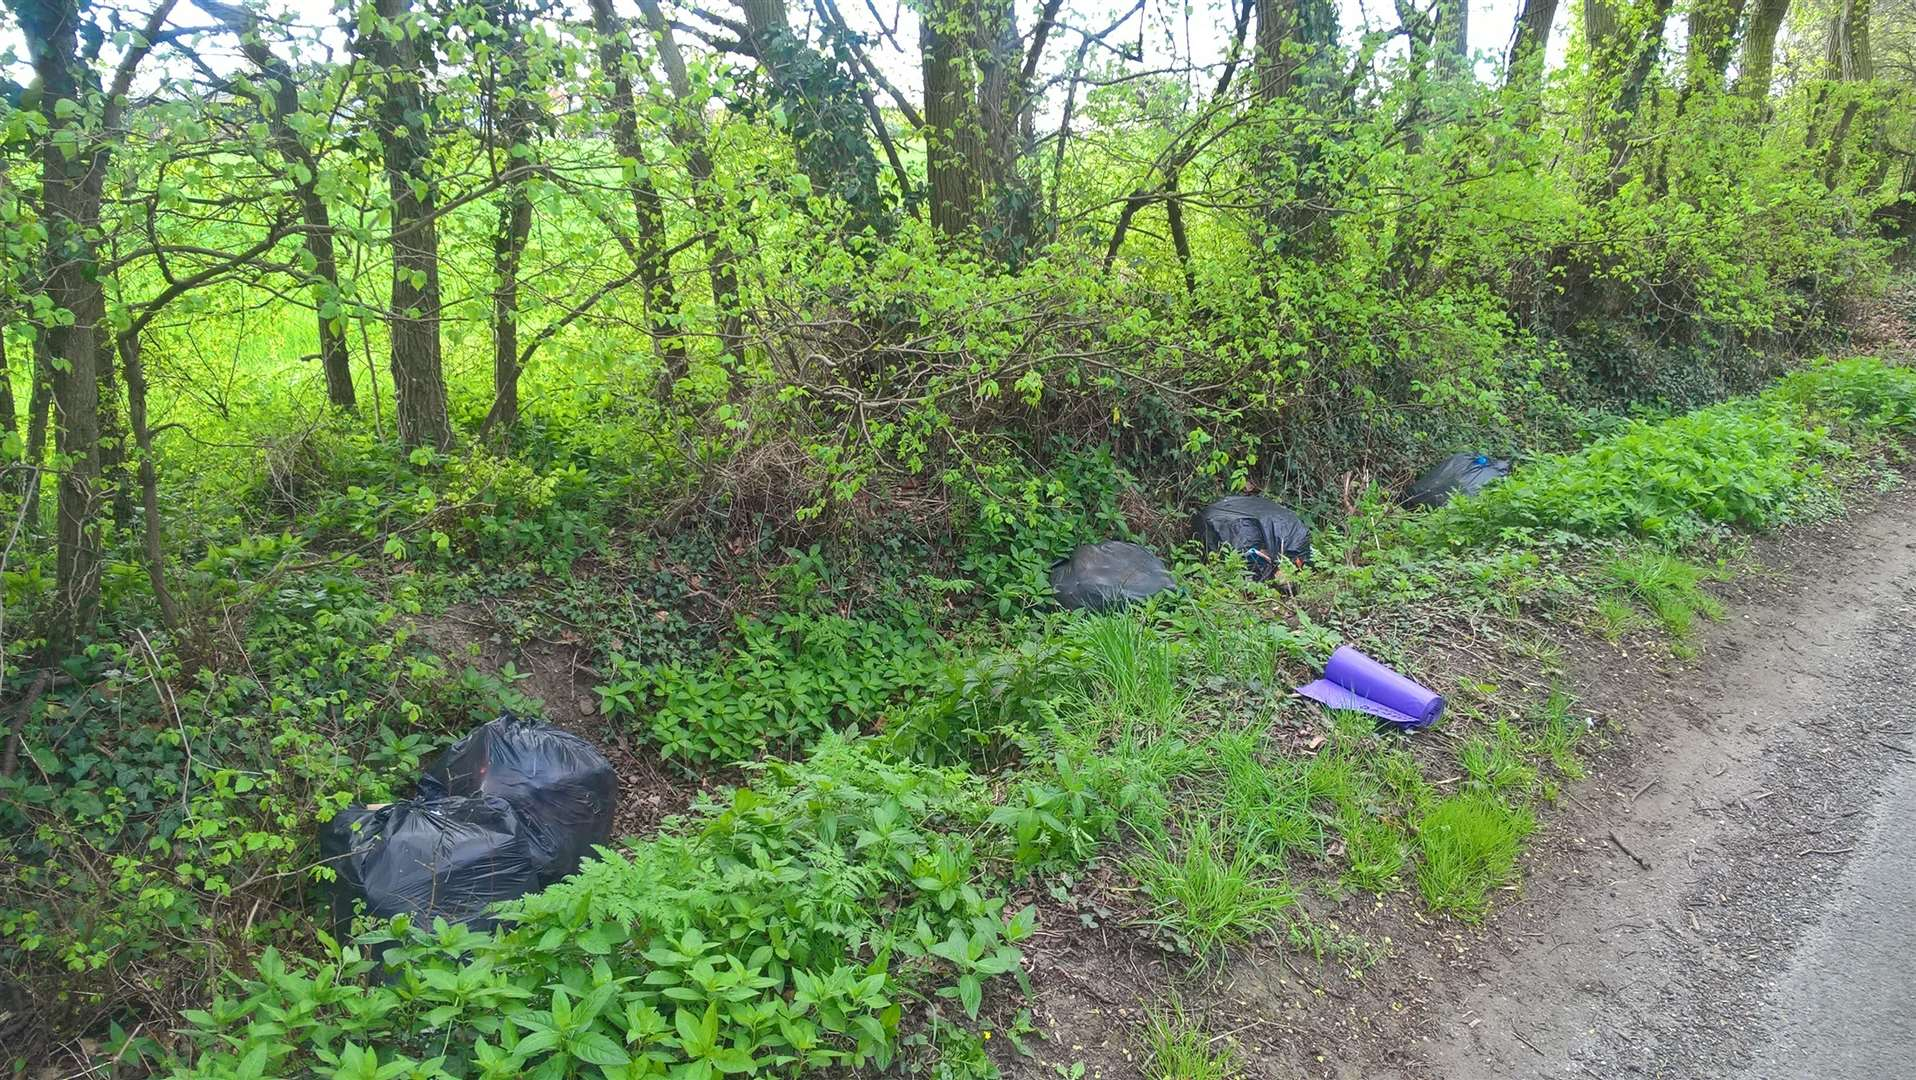 Joanne Phillips, 42, of Brendon Drive, Halstead, was ordered to pay a total of £550, after pleading guilty to fly tipping in Halstead, Little Maplestead and Ridgewell. Photo supplied by Braintree District Council. (4968569)